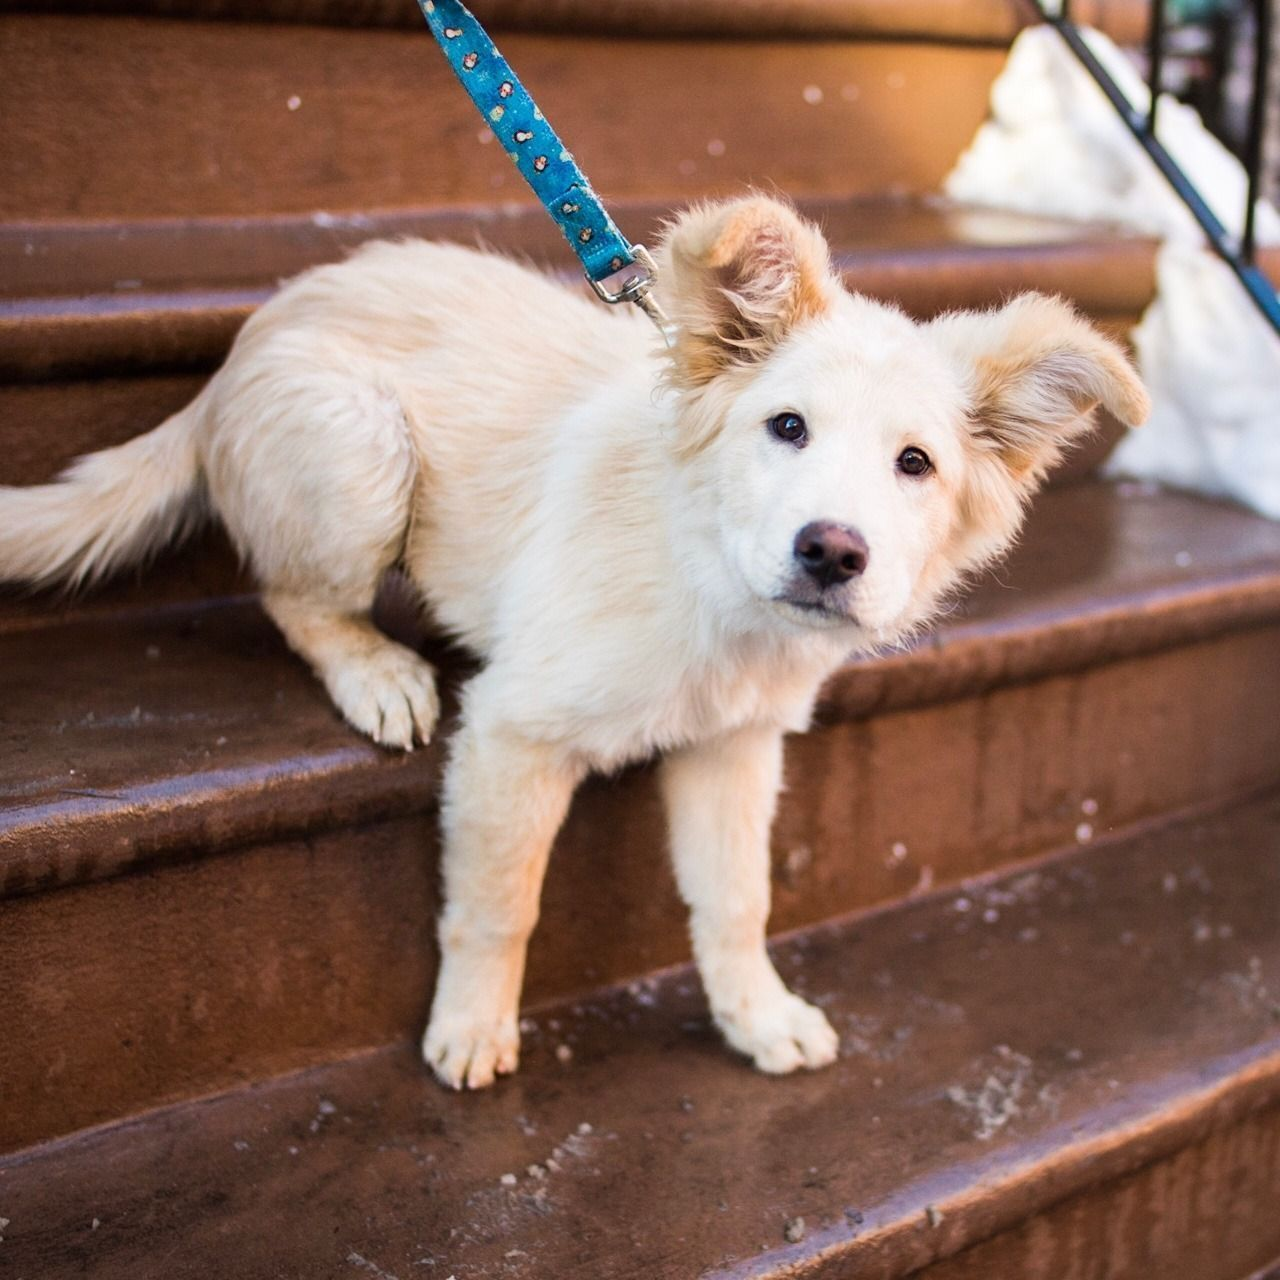 Thedogist Larry Chow Chow Golden Retriever Mix 4 M O 9th